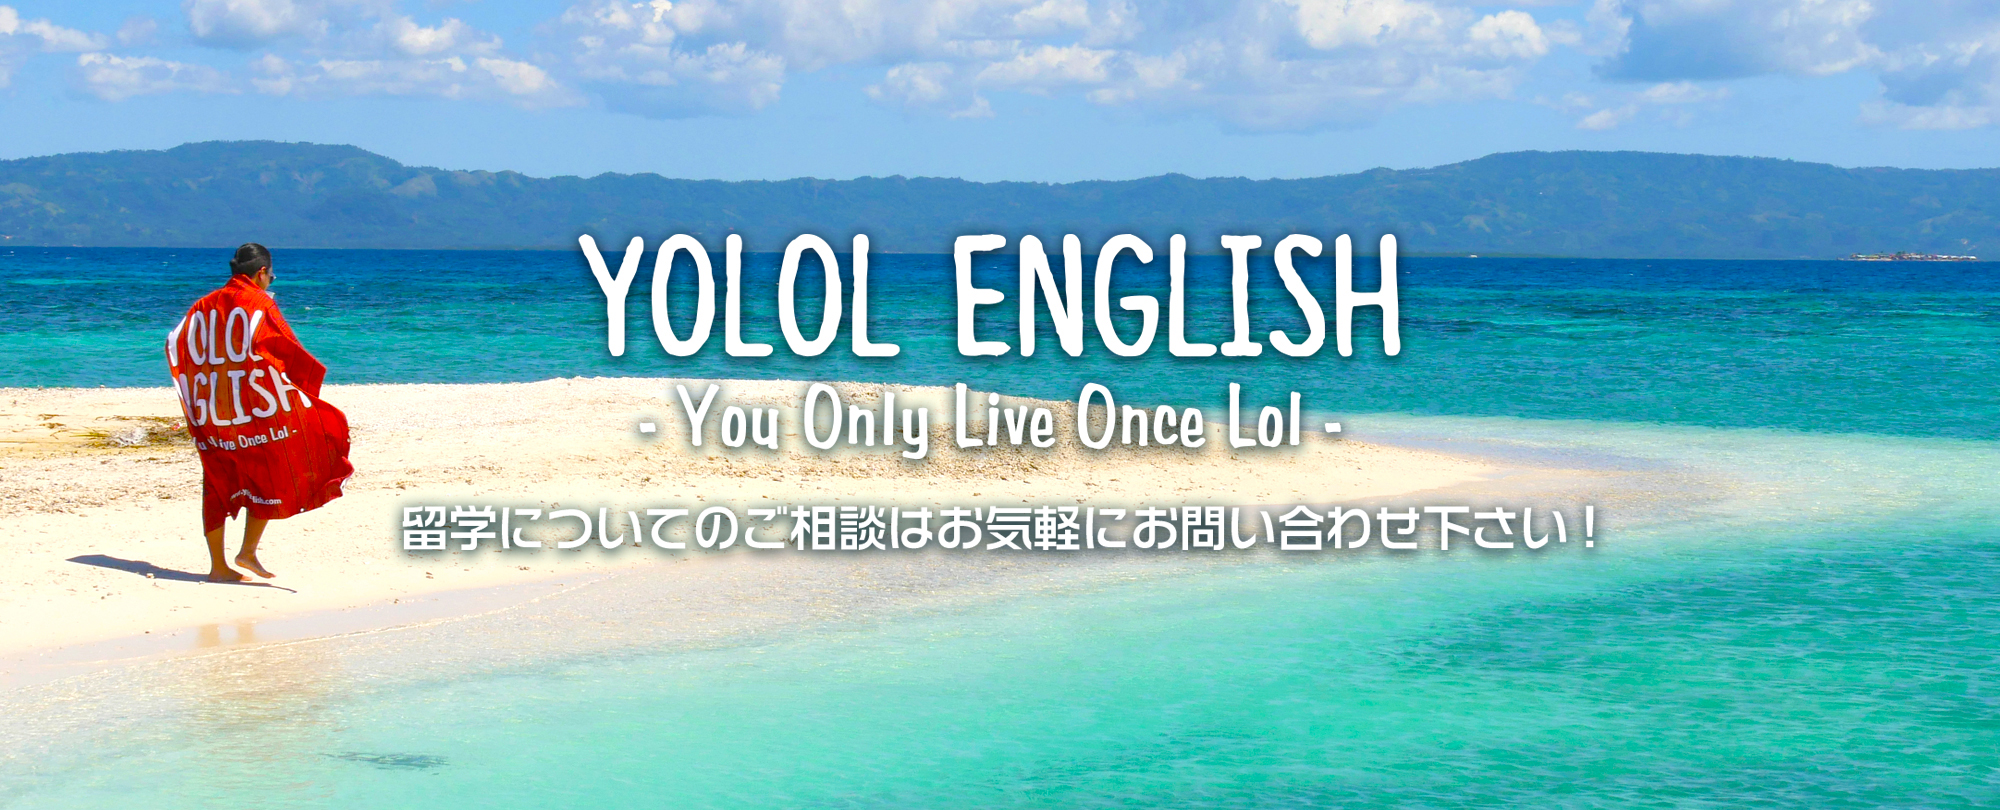 YOLOL ENGLISH -You Only Live Once Lol- 留学についてのご相談はお気軽にお問合せください!